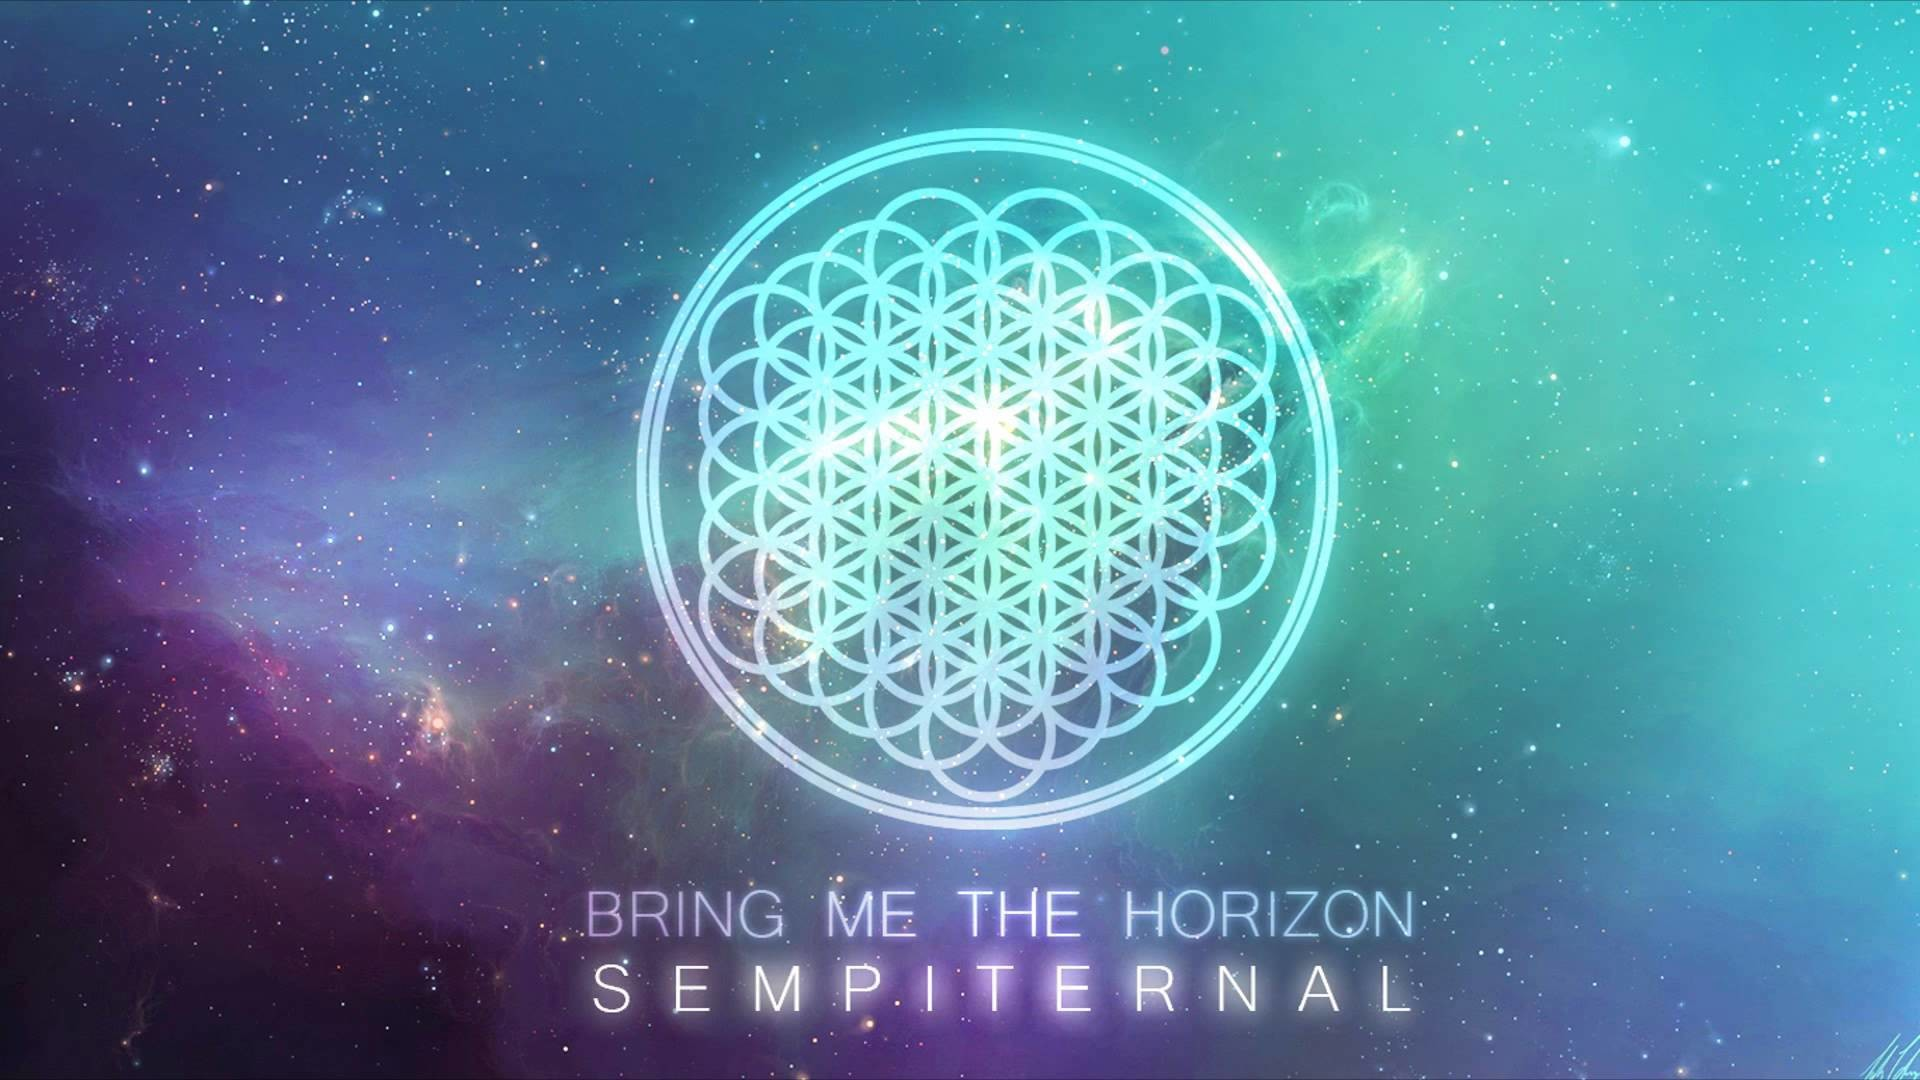 Bmth Iphone Wallpaper 78 Images